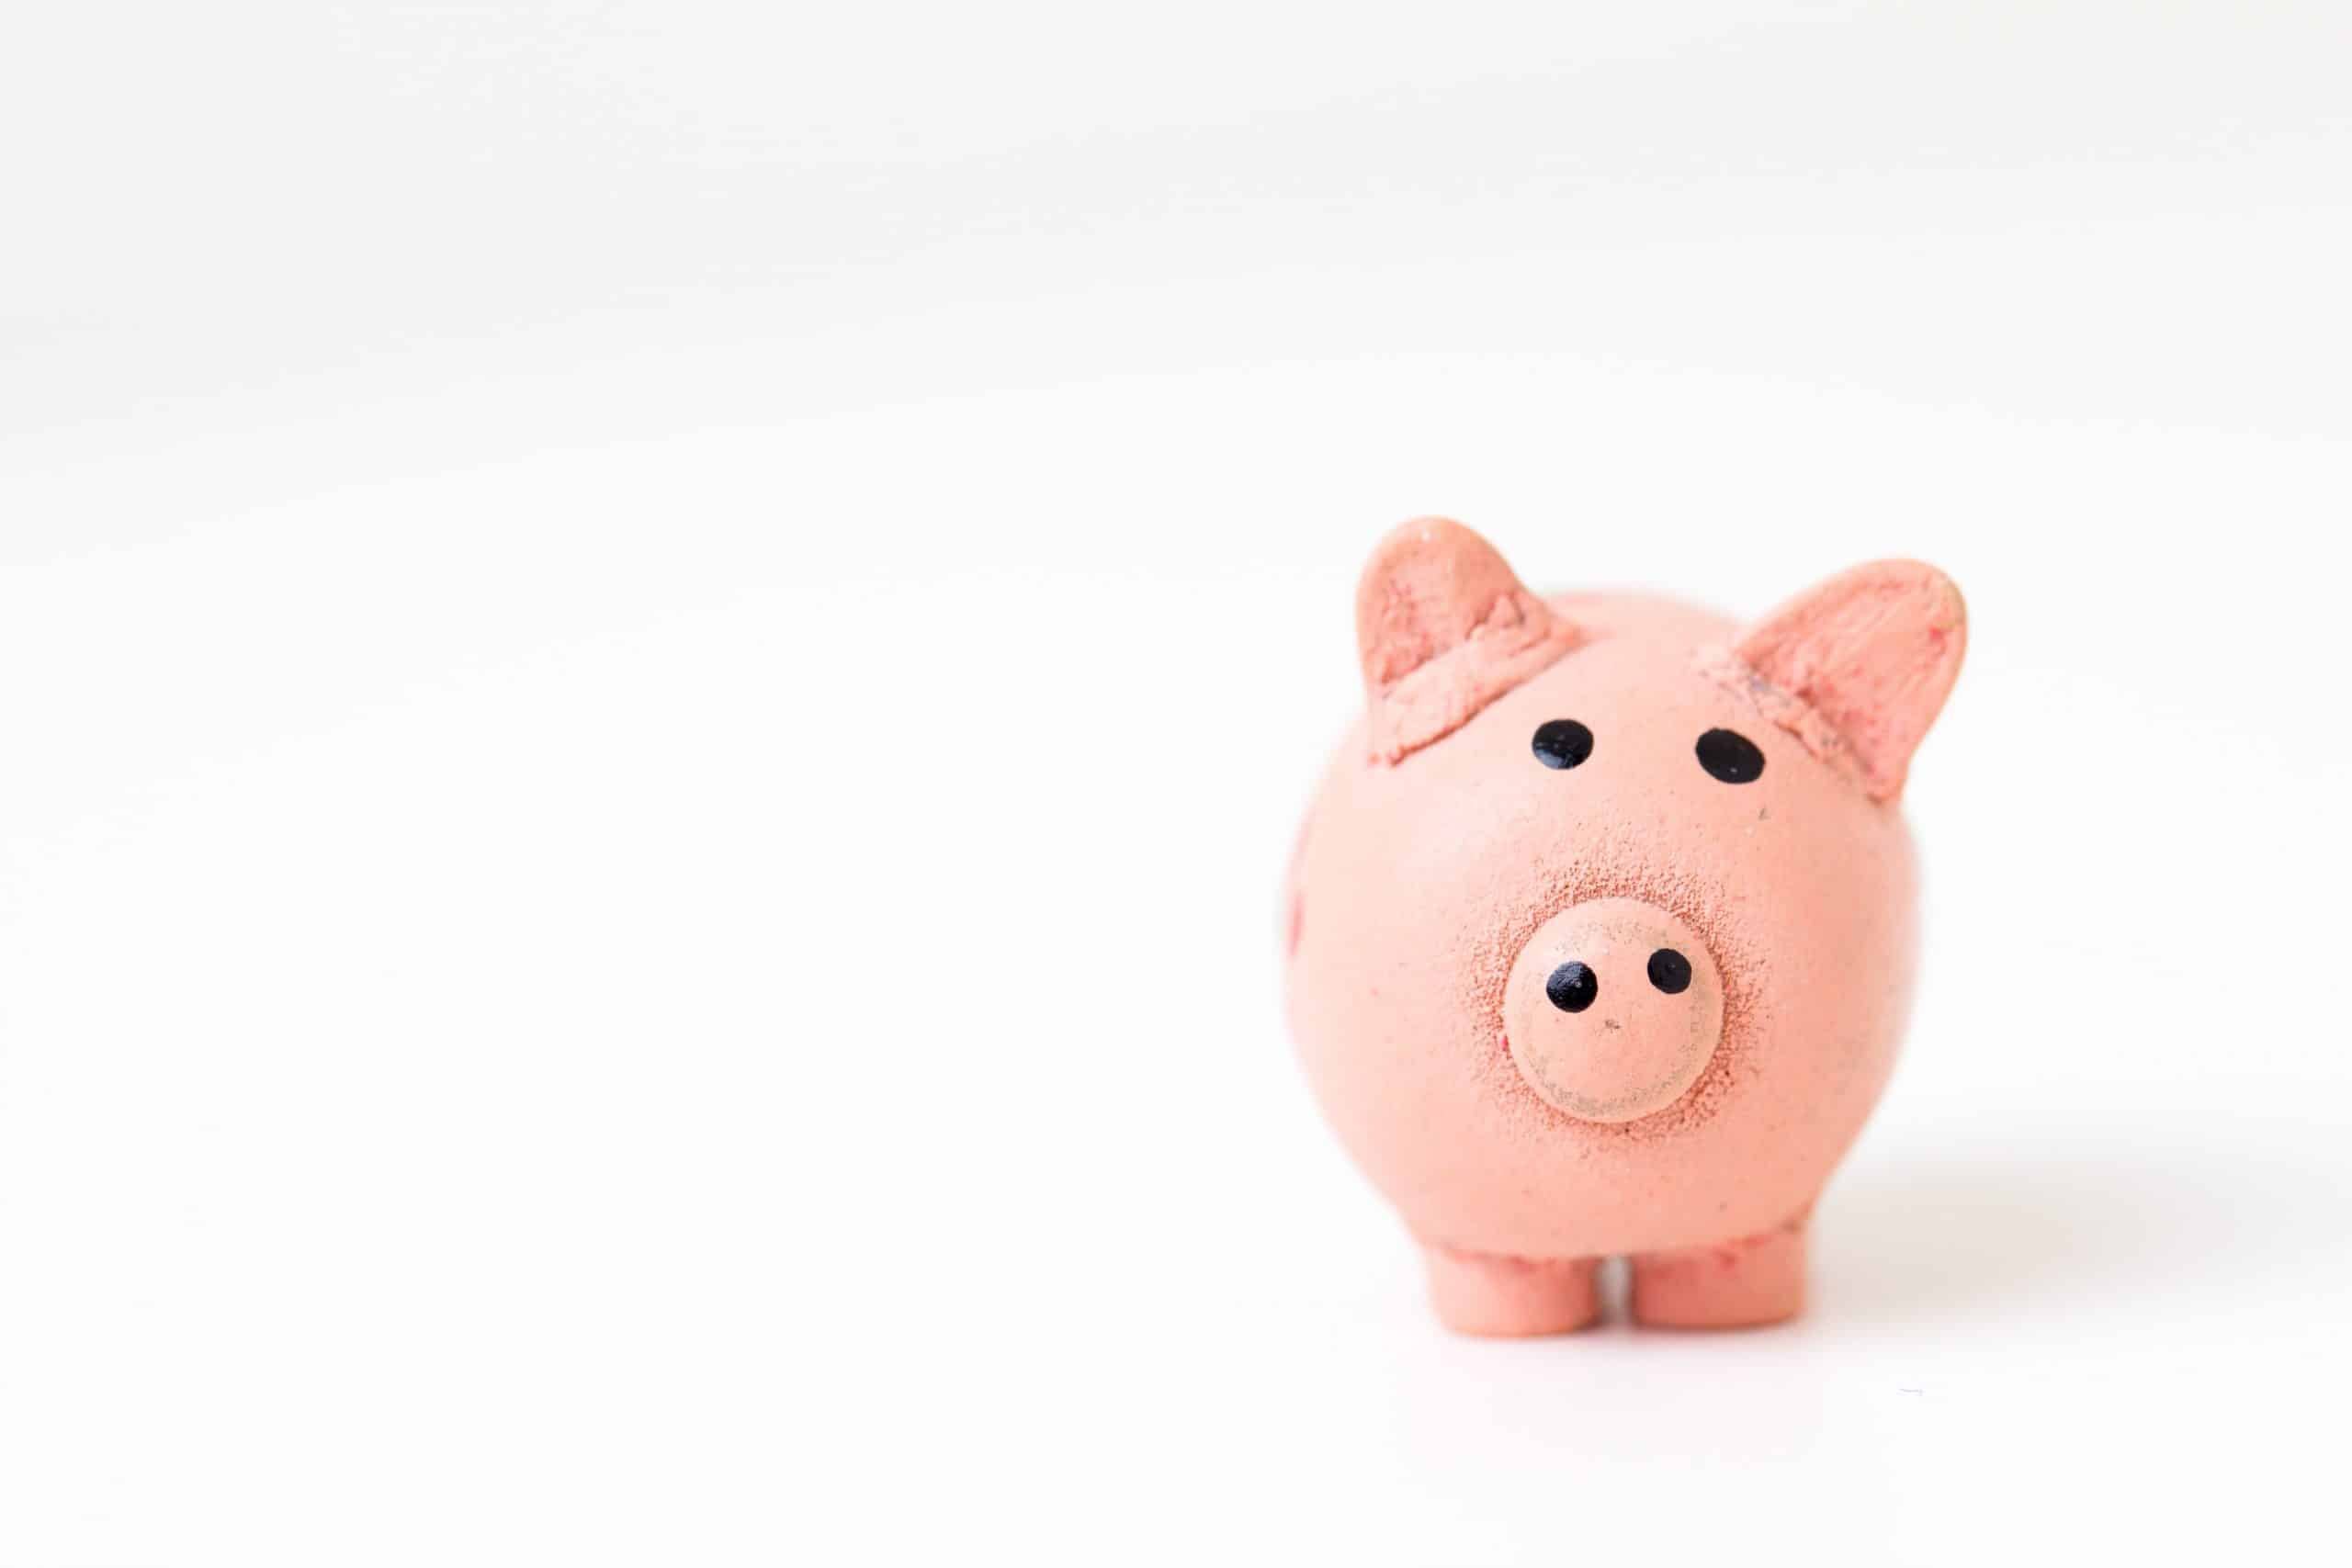 Piggy bank looking concerned about hidden fees on HSAs in Canada